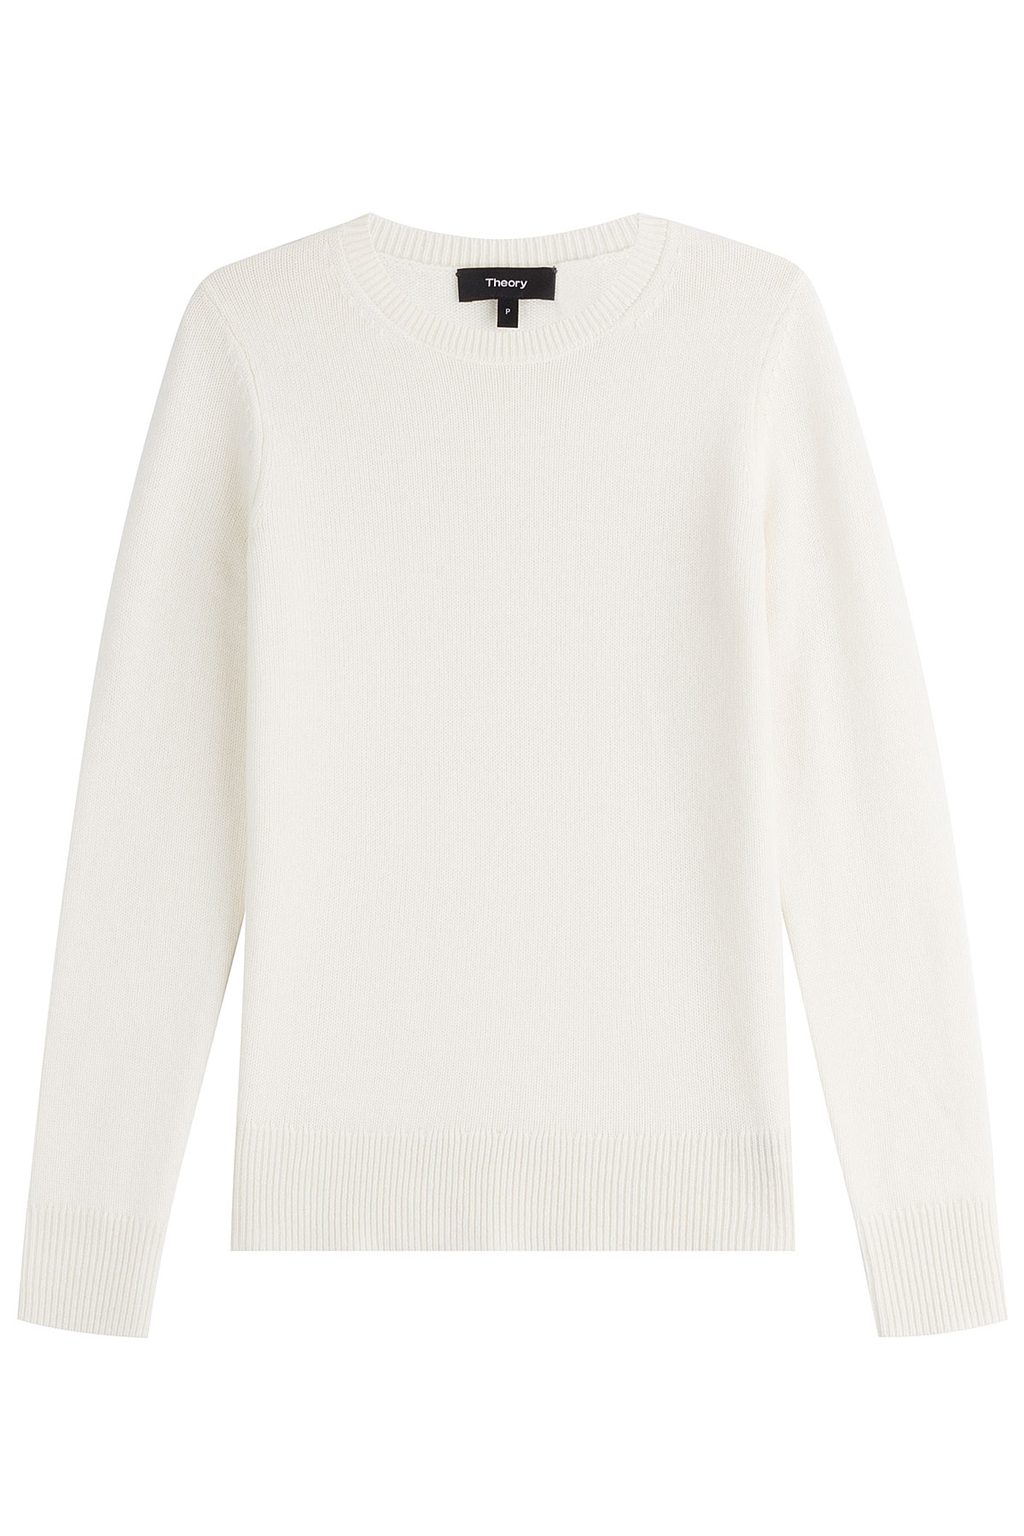 Cashmere Pullover White - pattern: plain; style: standard; predominant colour: white; occasions: casual; length: standard; fit: slim fit; neckline: crew; fibres: cashmere - 100%; sleeve length: long sleeve; sleeve style: standard; texture group: knits/crochet; pattern type: knitted - other; wardrobe: investment; season: a/w 2016